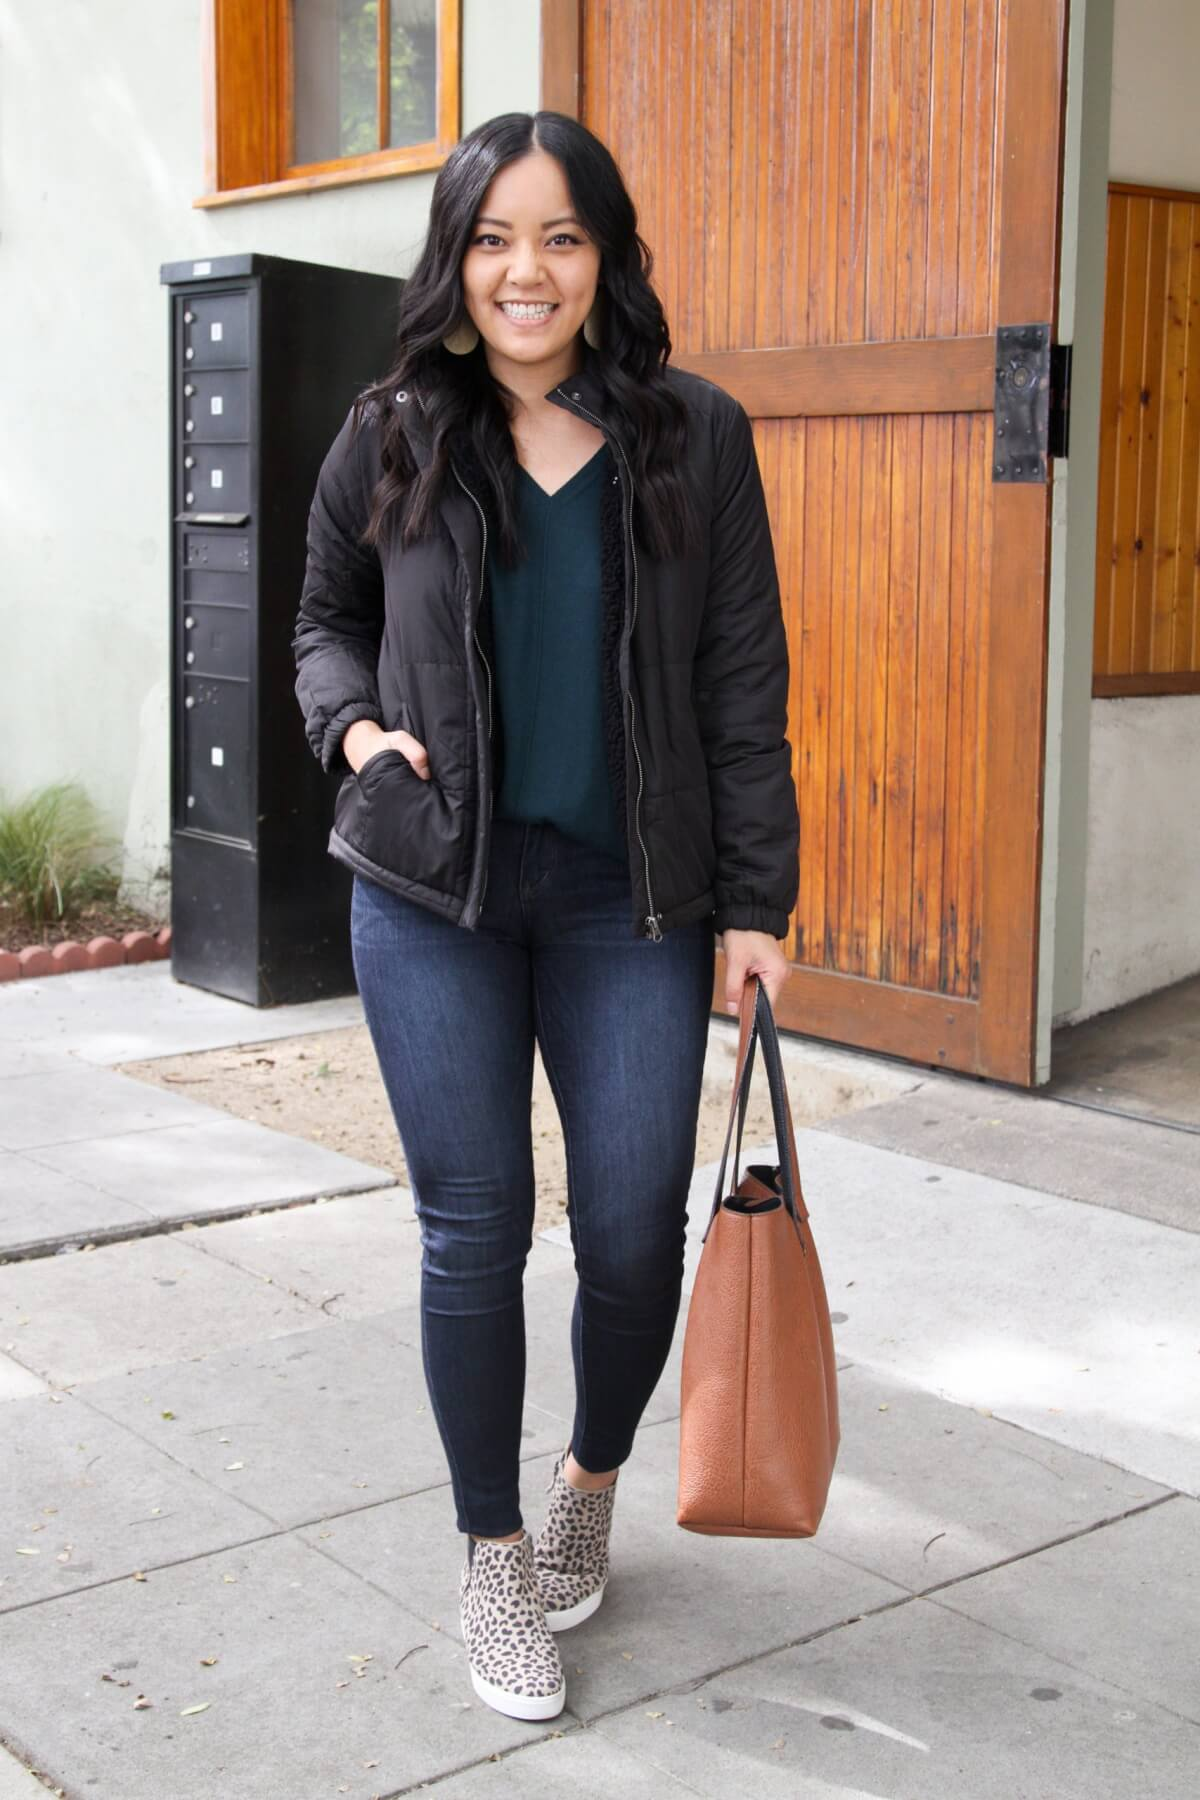 Fall Skinny Jeans Outfit: black puffer jacket + dark green v-neck sweater + leopard wedge sneakers + skinny jeans + gold leather earrings + cognac tote